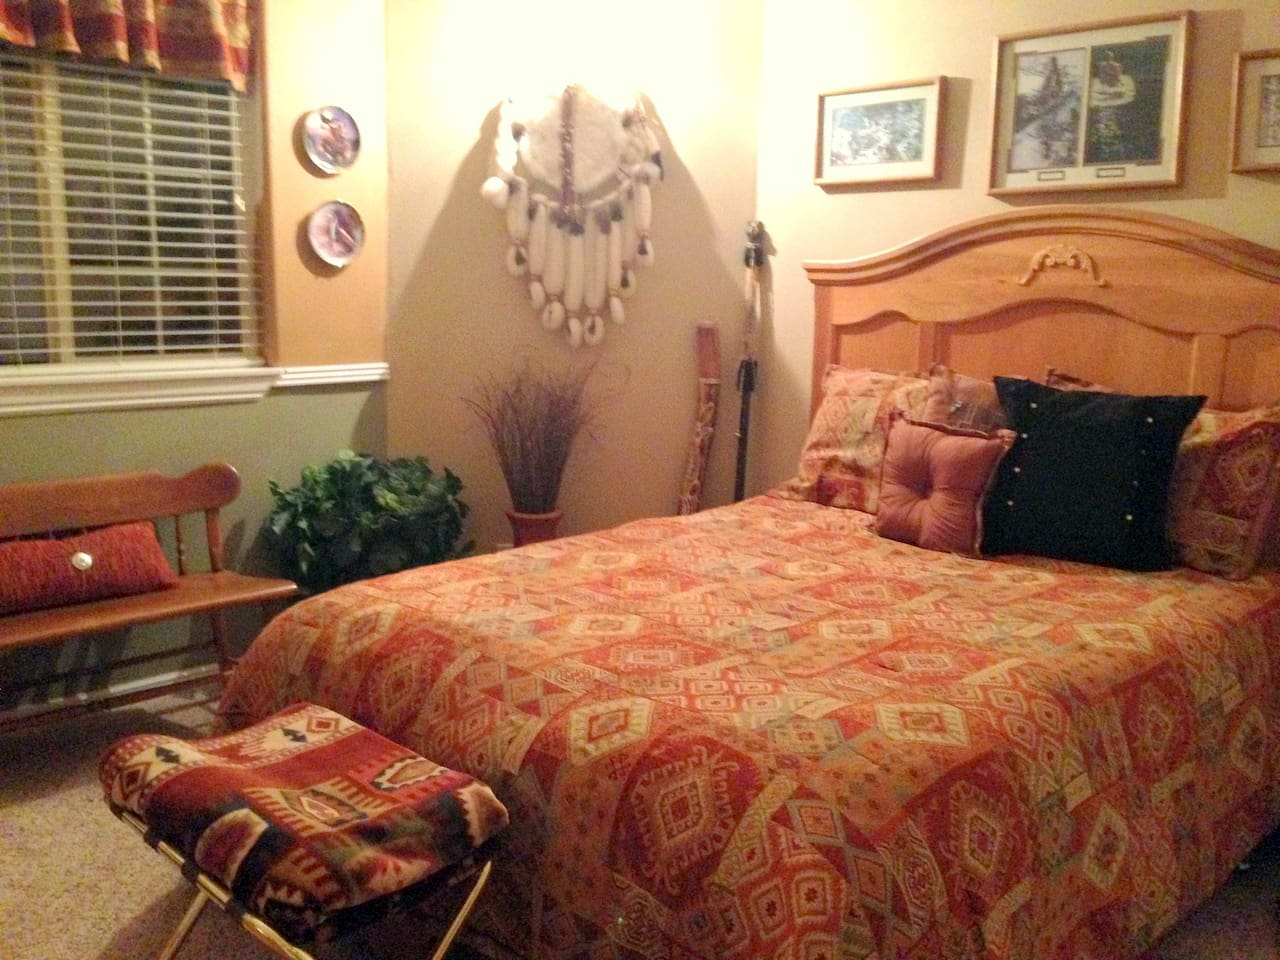 Is the Bev Doolittle bedroom. It is decorated in a Southwestern theme with Bev Doolittle prints on the wall. If you don't know who Bev Doolittle is I guess you better come and find out. We would love to have you as our guests at the Winchester House.